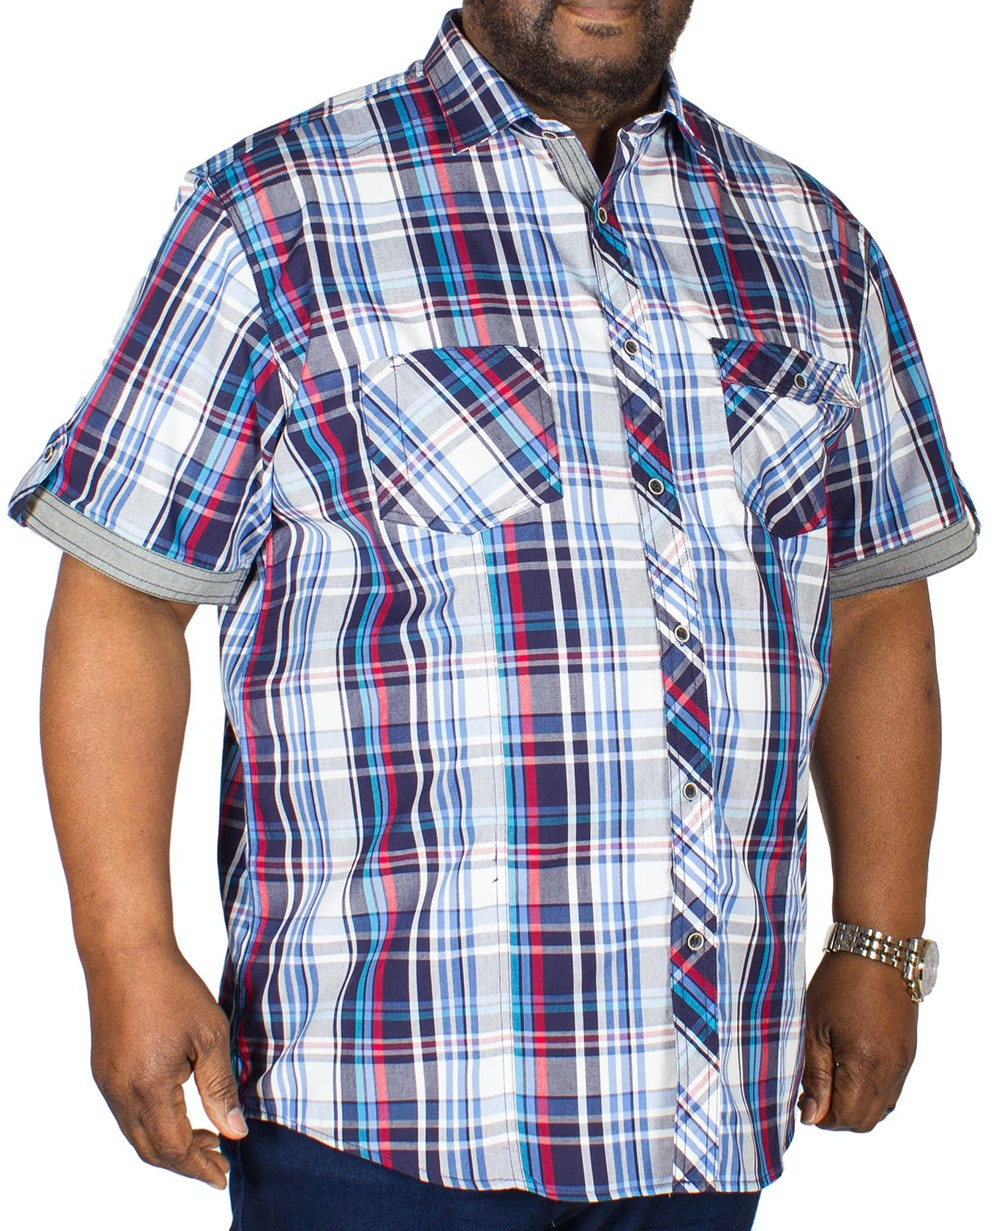 KAM Retro Check Shirt Blue